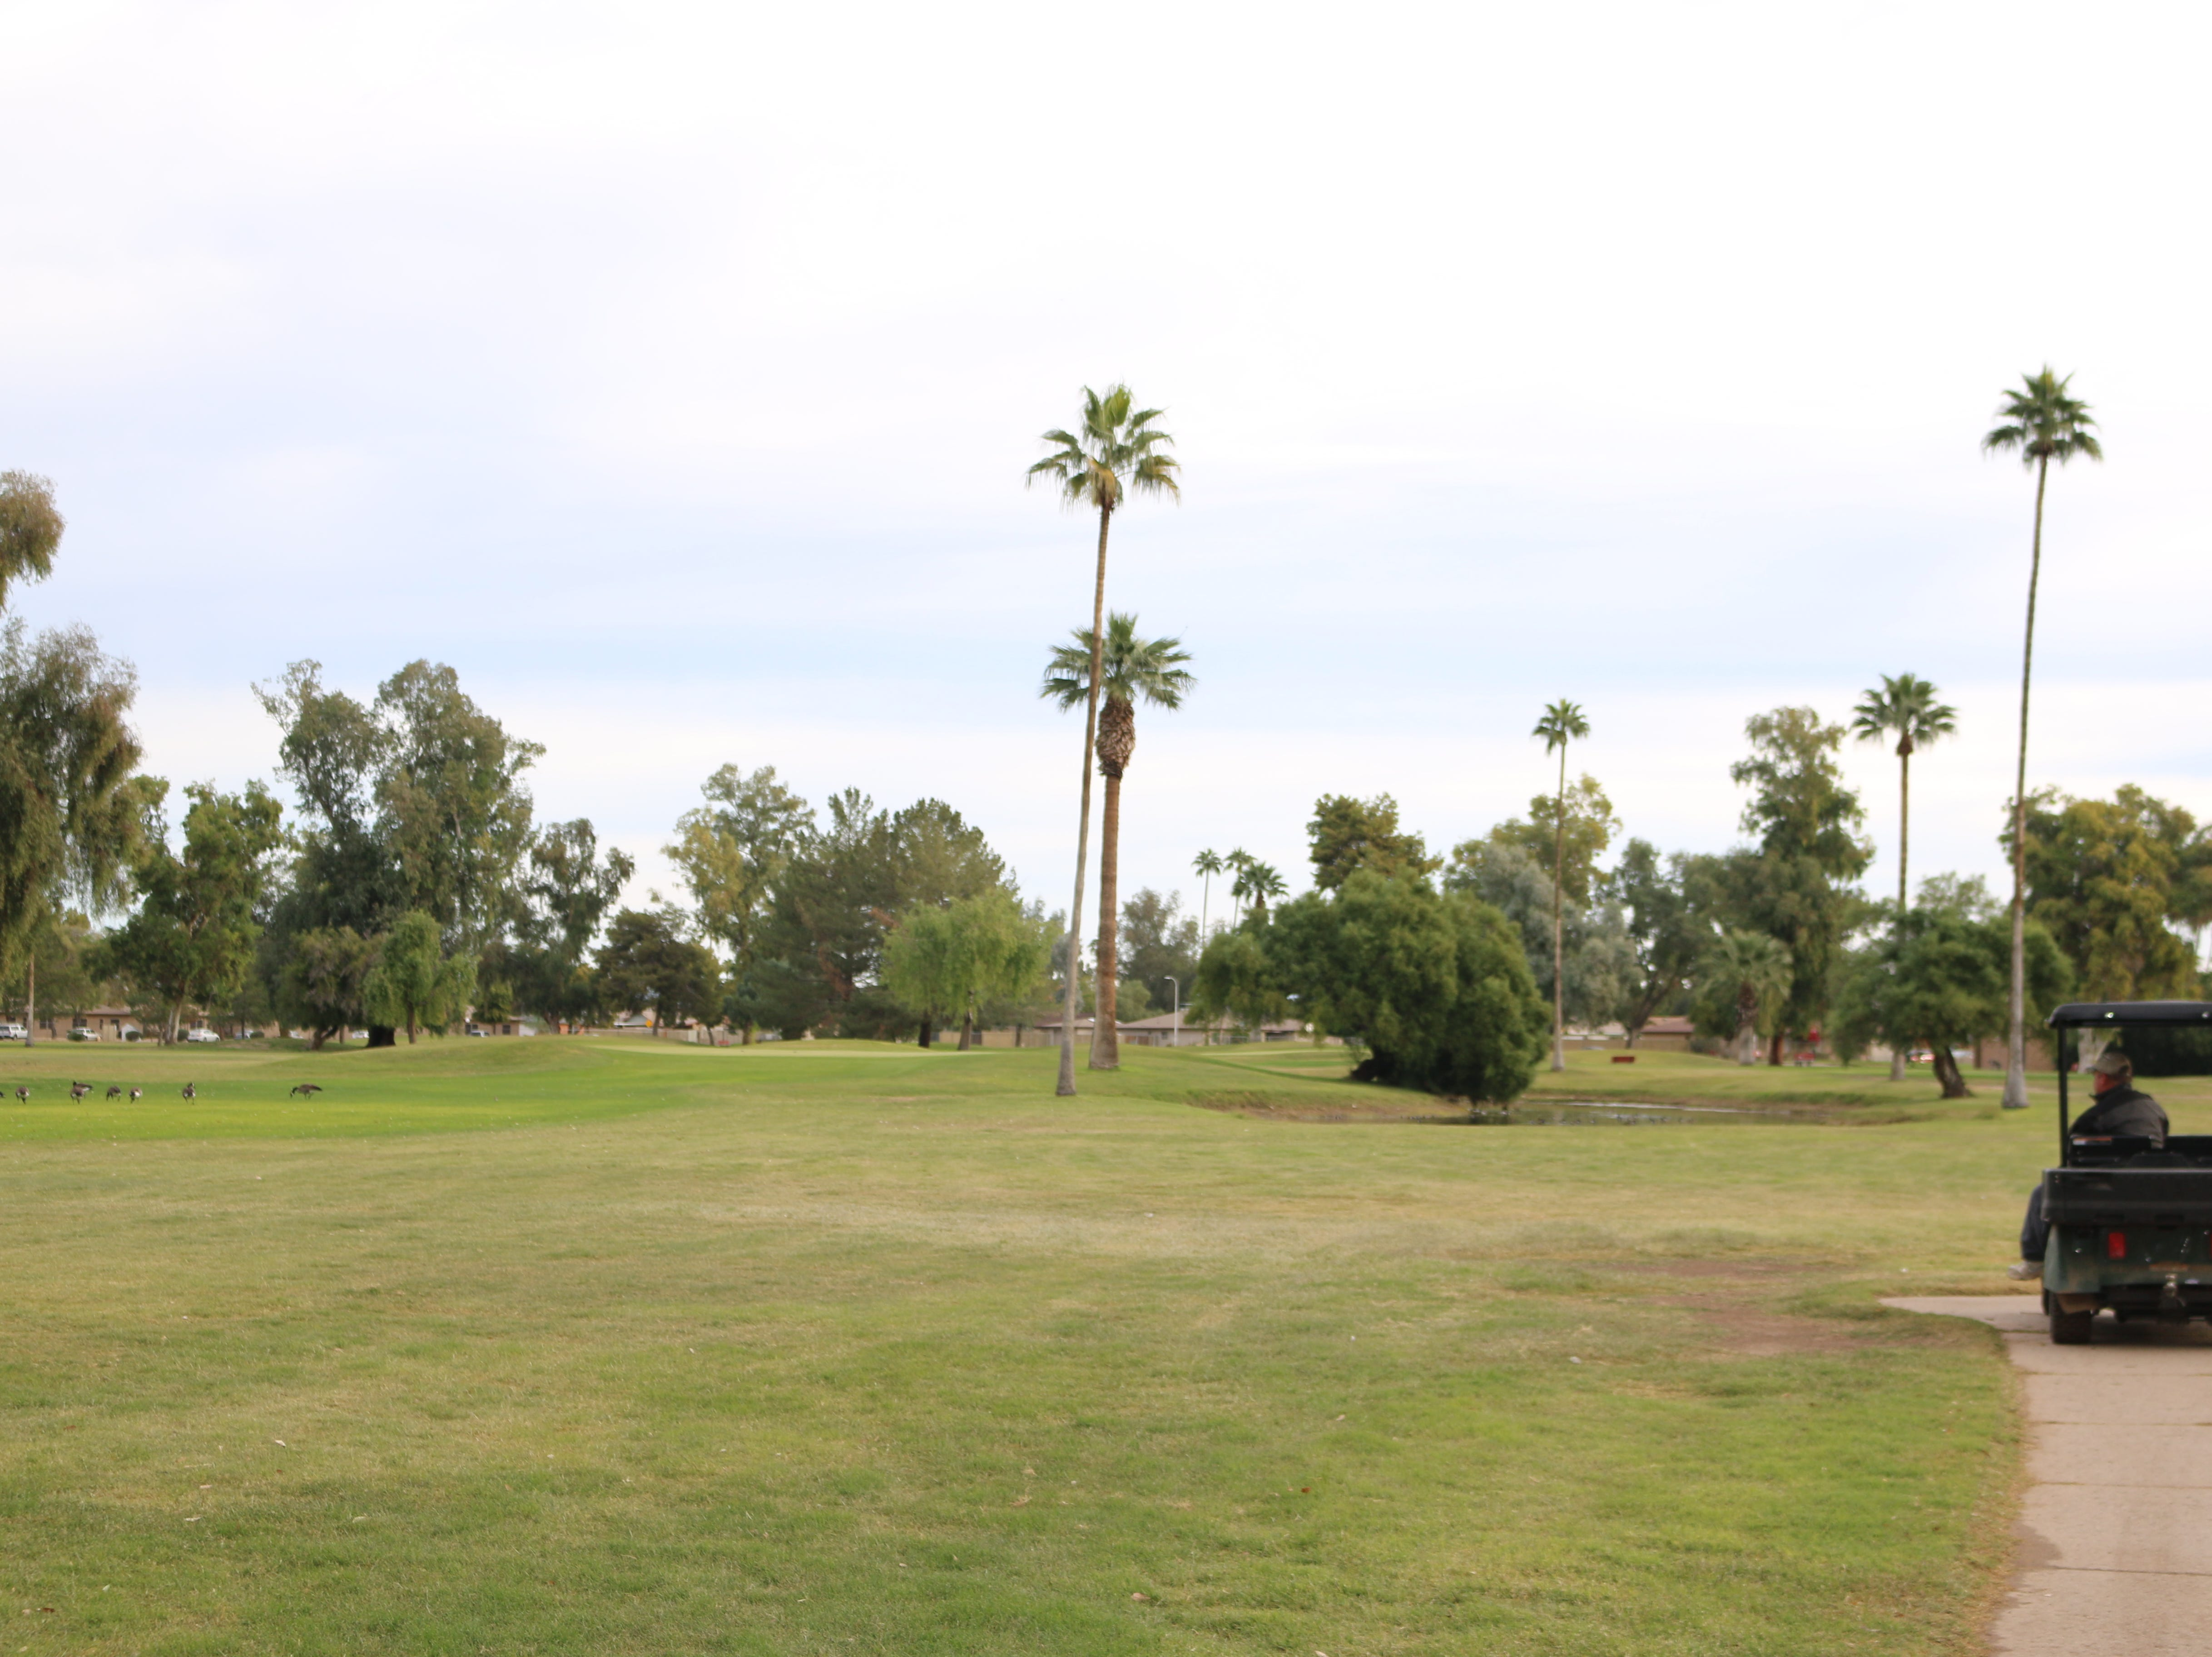 Glen Lakes Golf Course in Glendale has seen improvements in the last year, but the buildings are in bad shape.